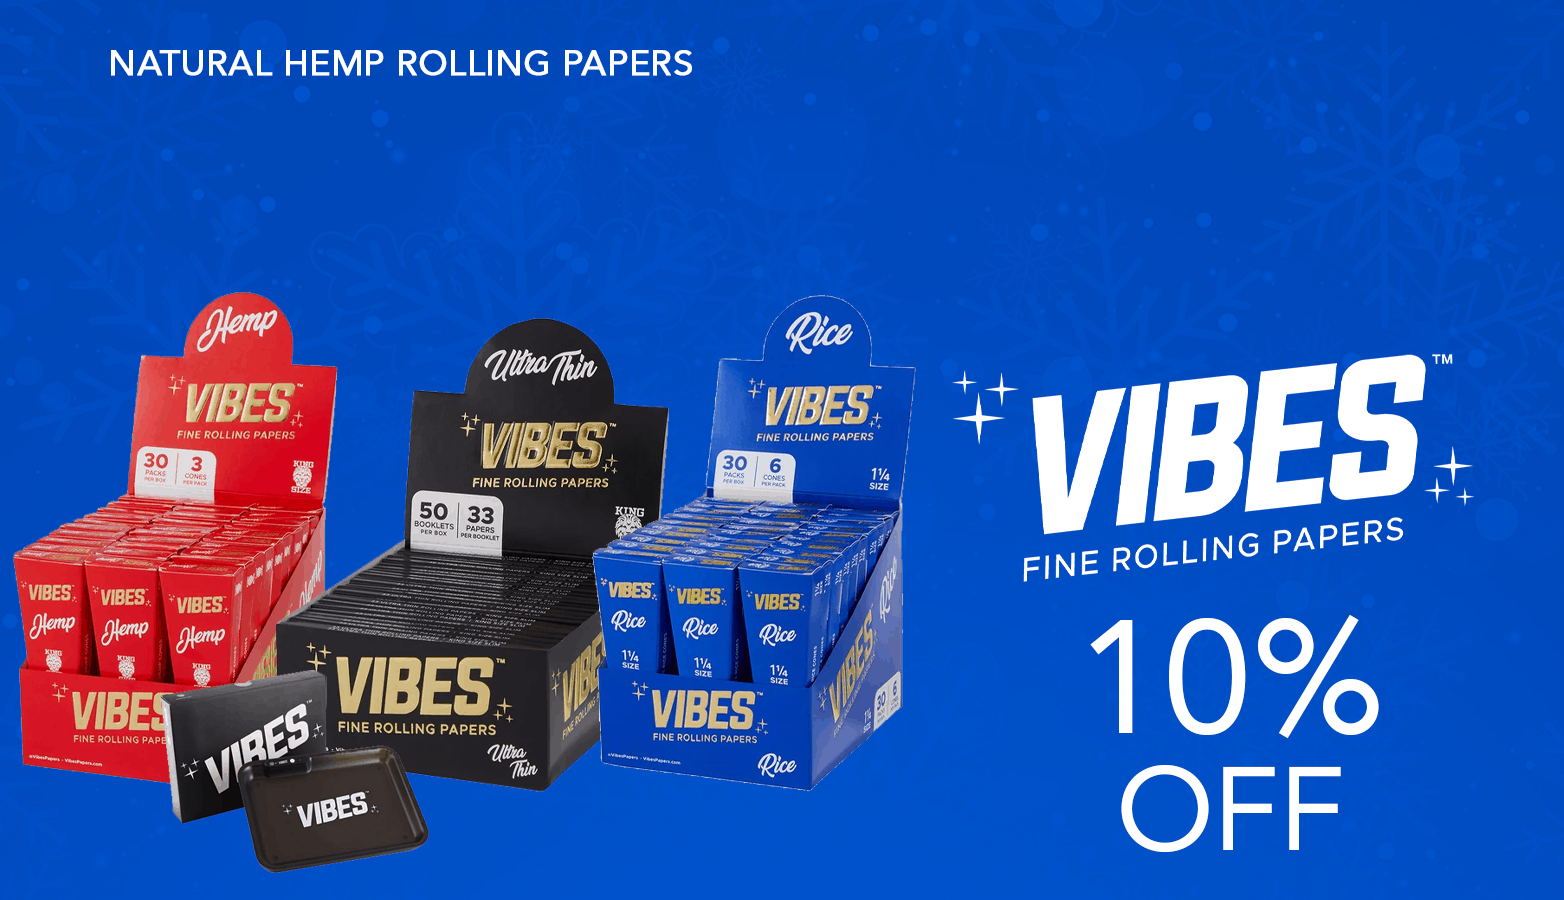 Vibes Cannabis Coupon Code Offer Website